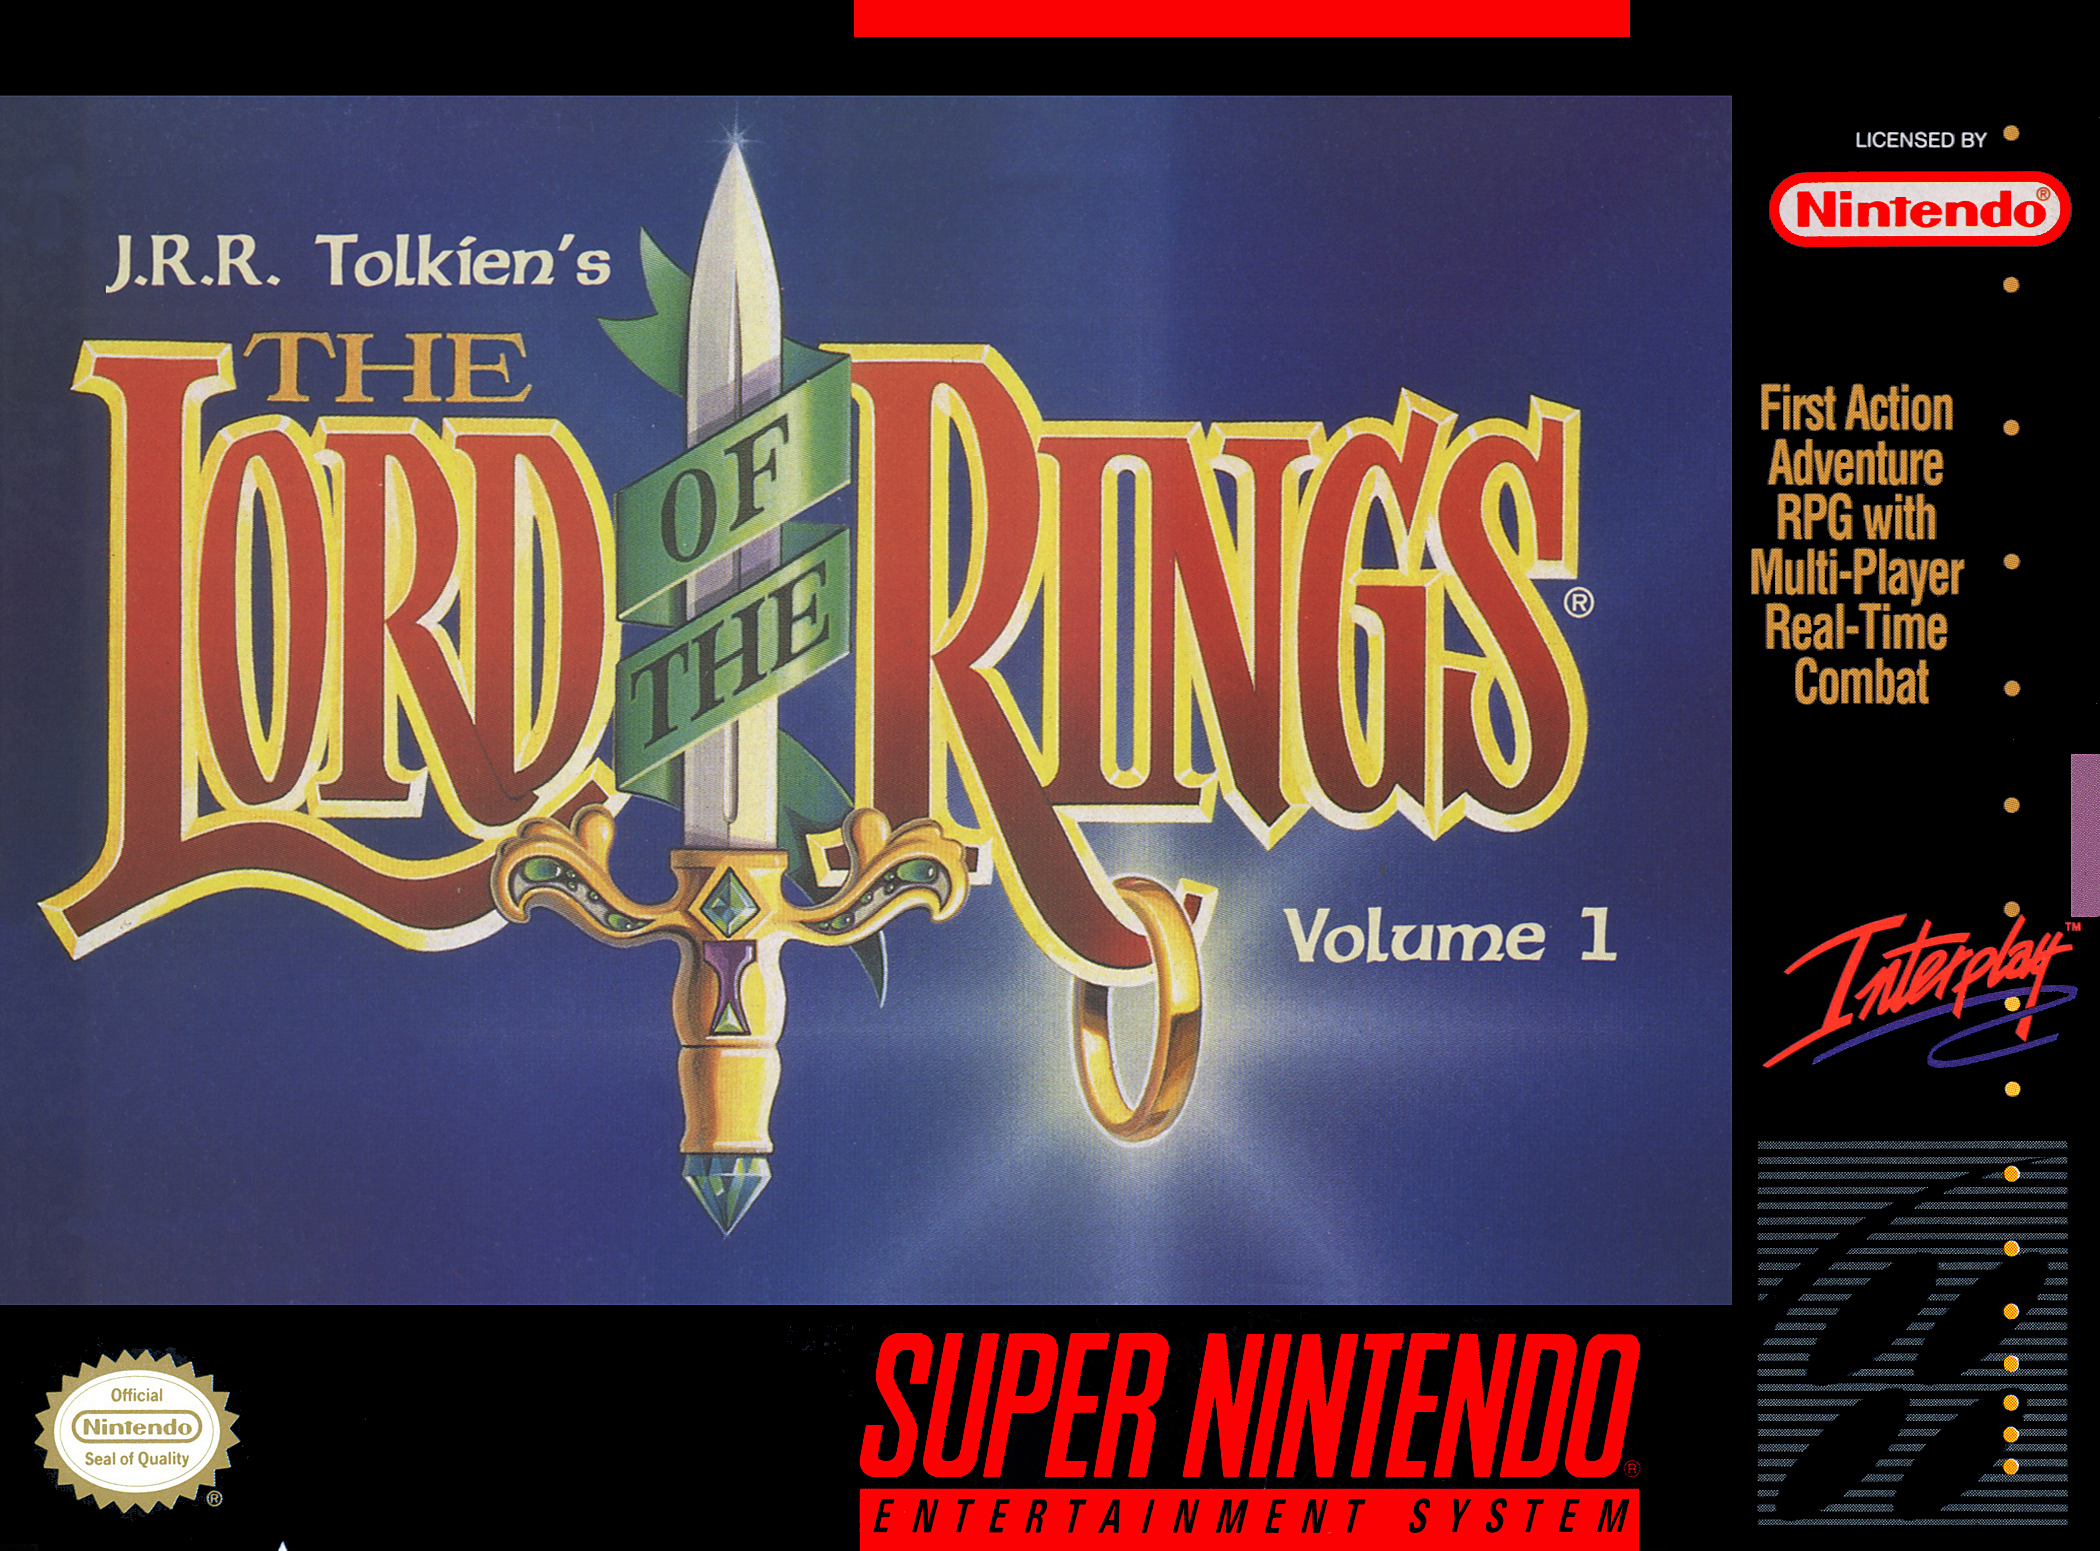 J.R.R. Tolkien's The Lord of the Rings/SNES